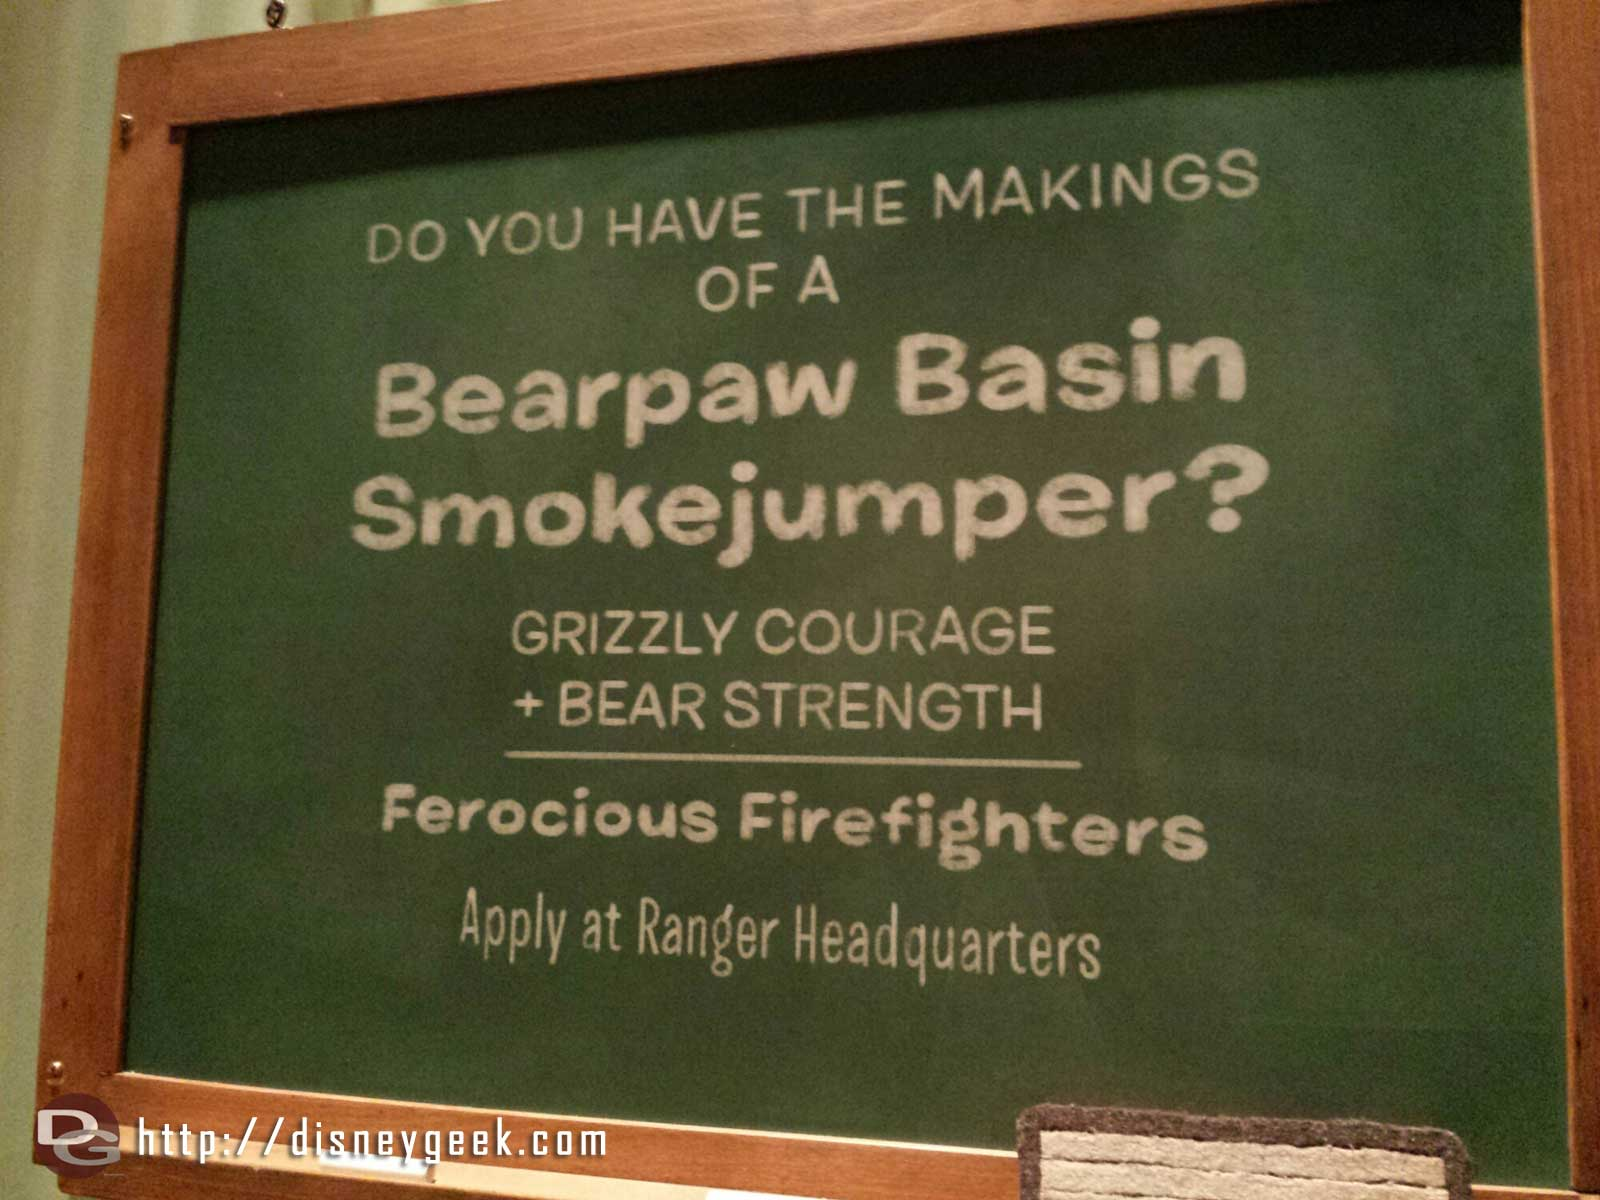 Bearpaw Basin Smokejumper ad inside the new Smokejumpers Grill